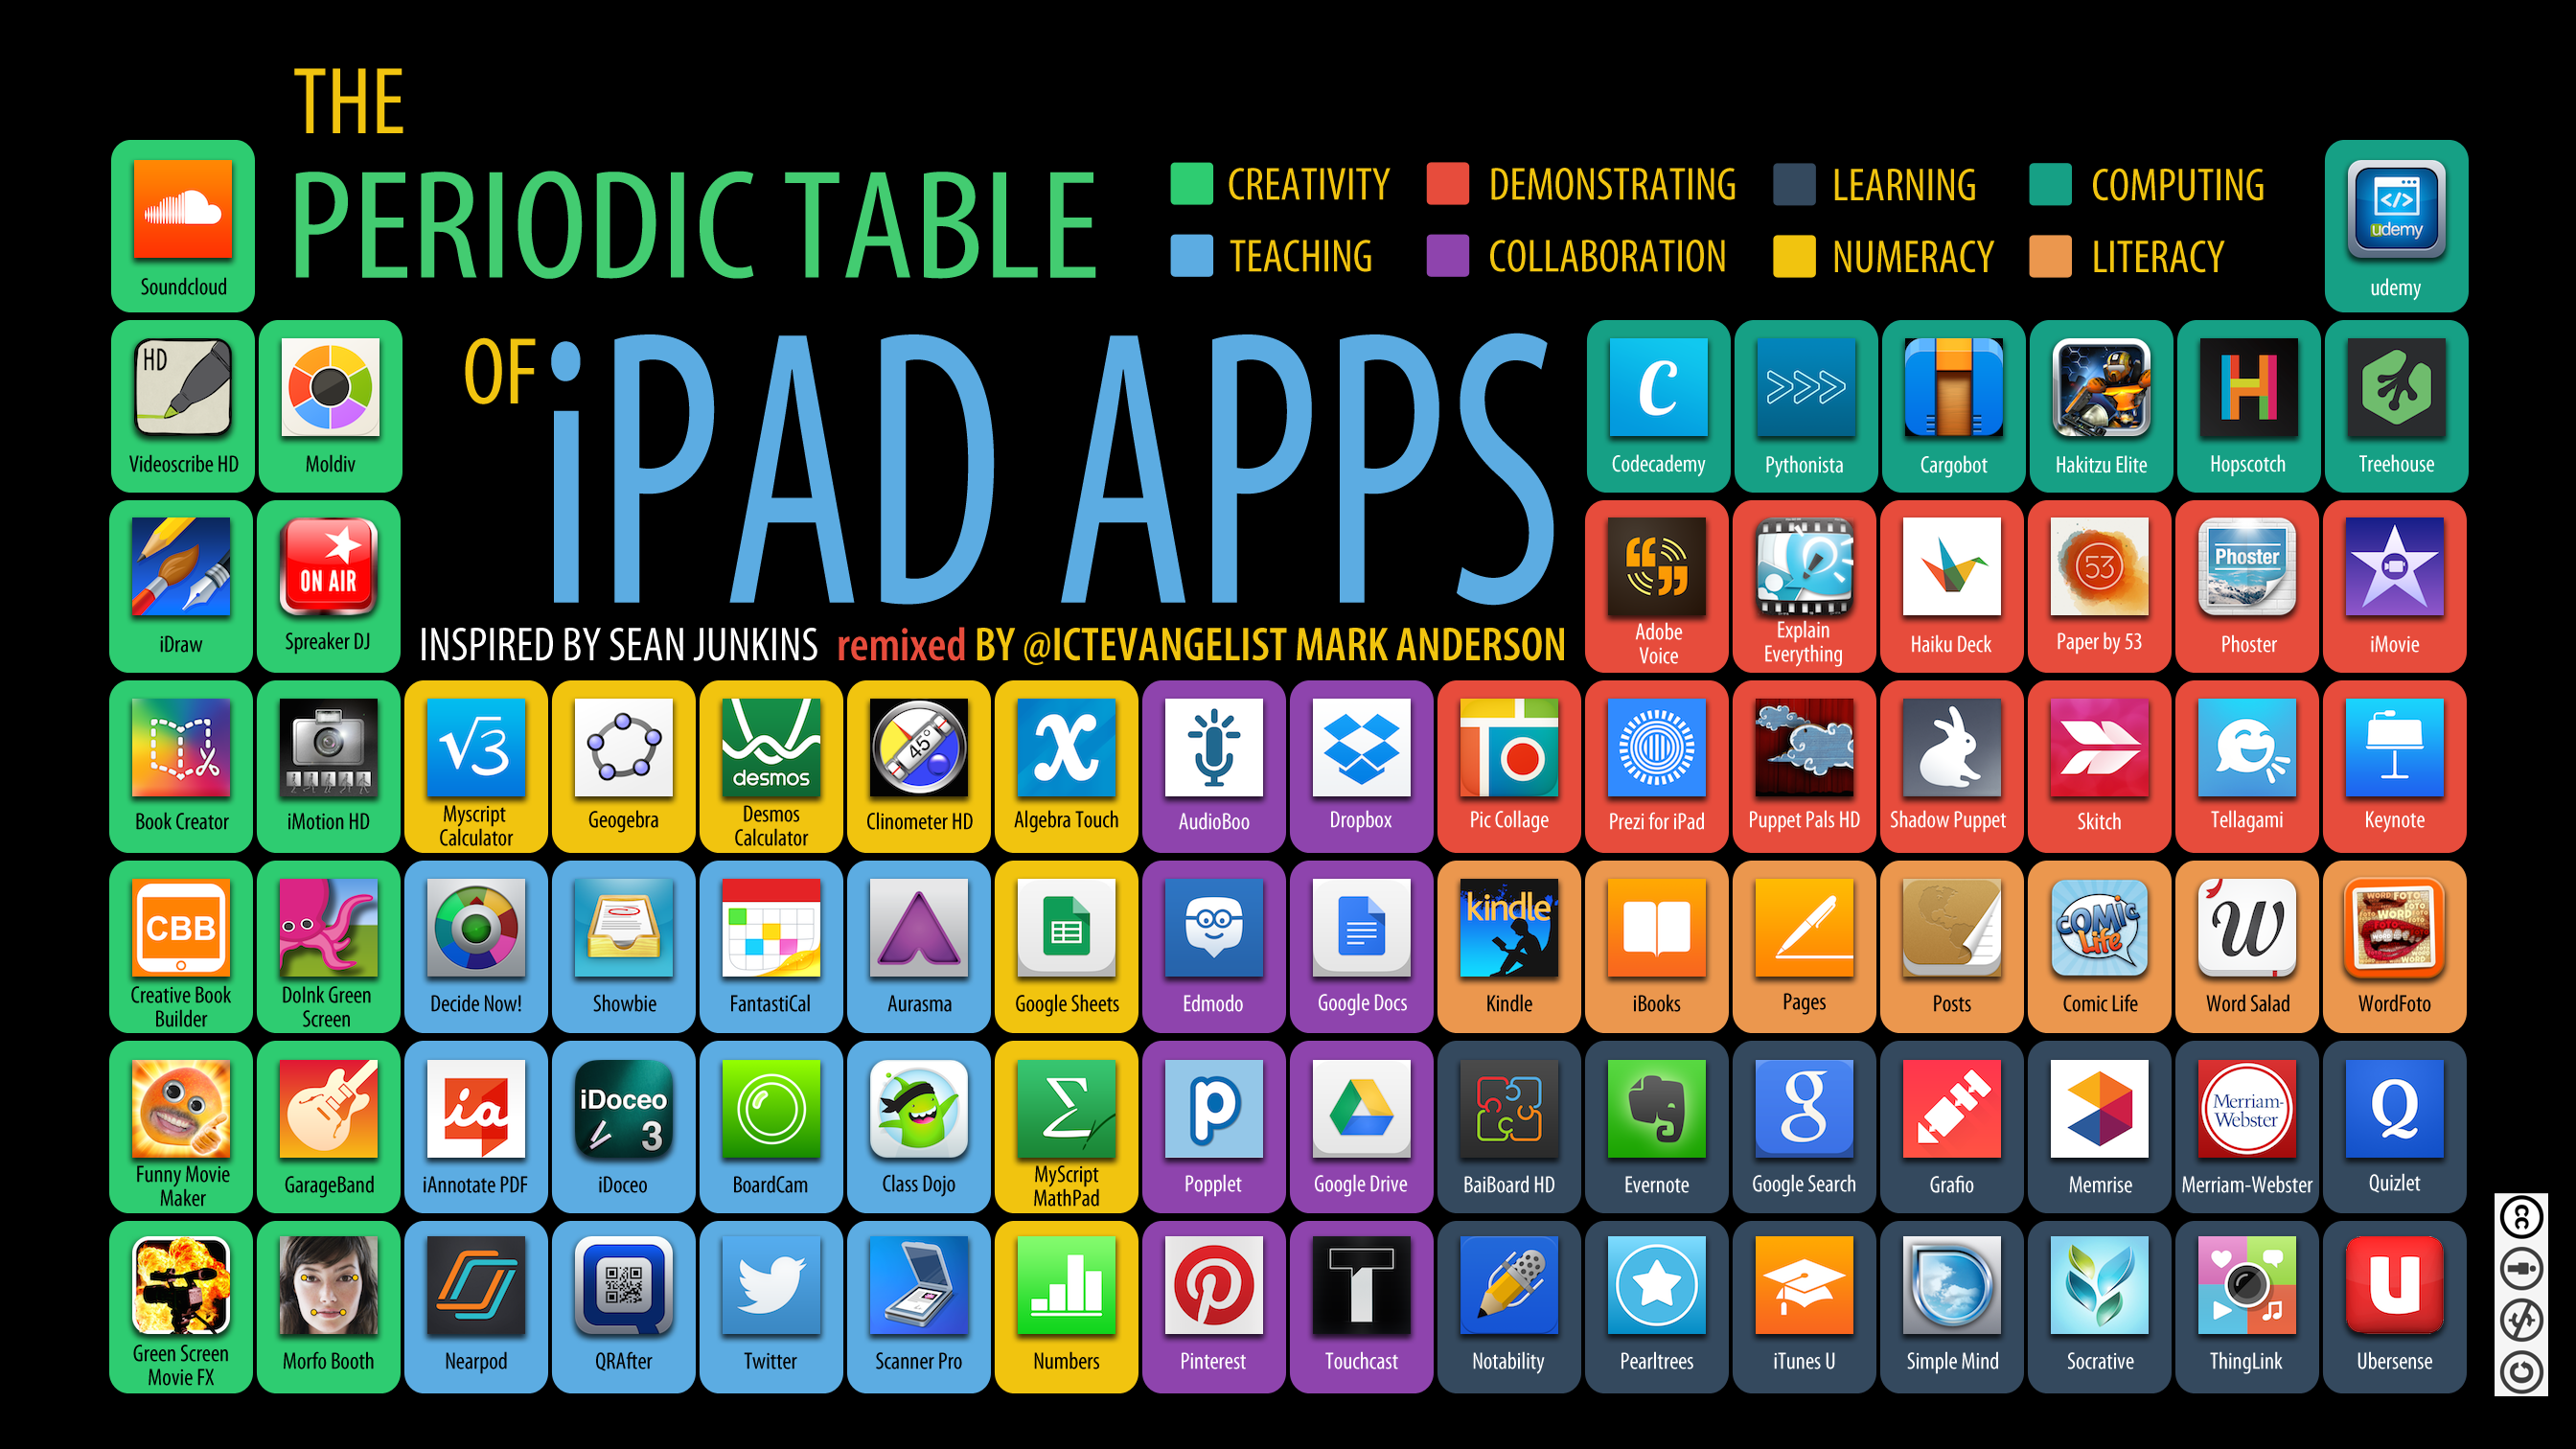 Tabla peridica de apps para ipad infografia infographic apple the periodic table of ipad apps infographic urtaz Images